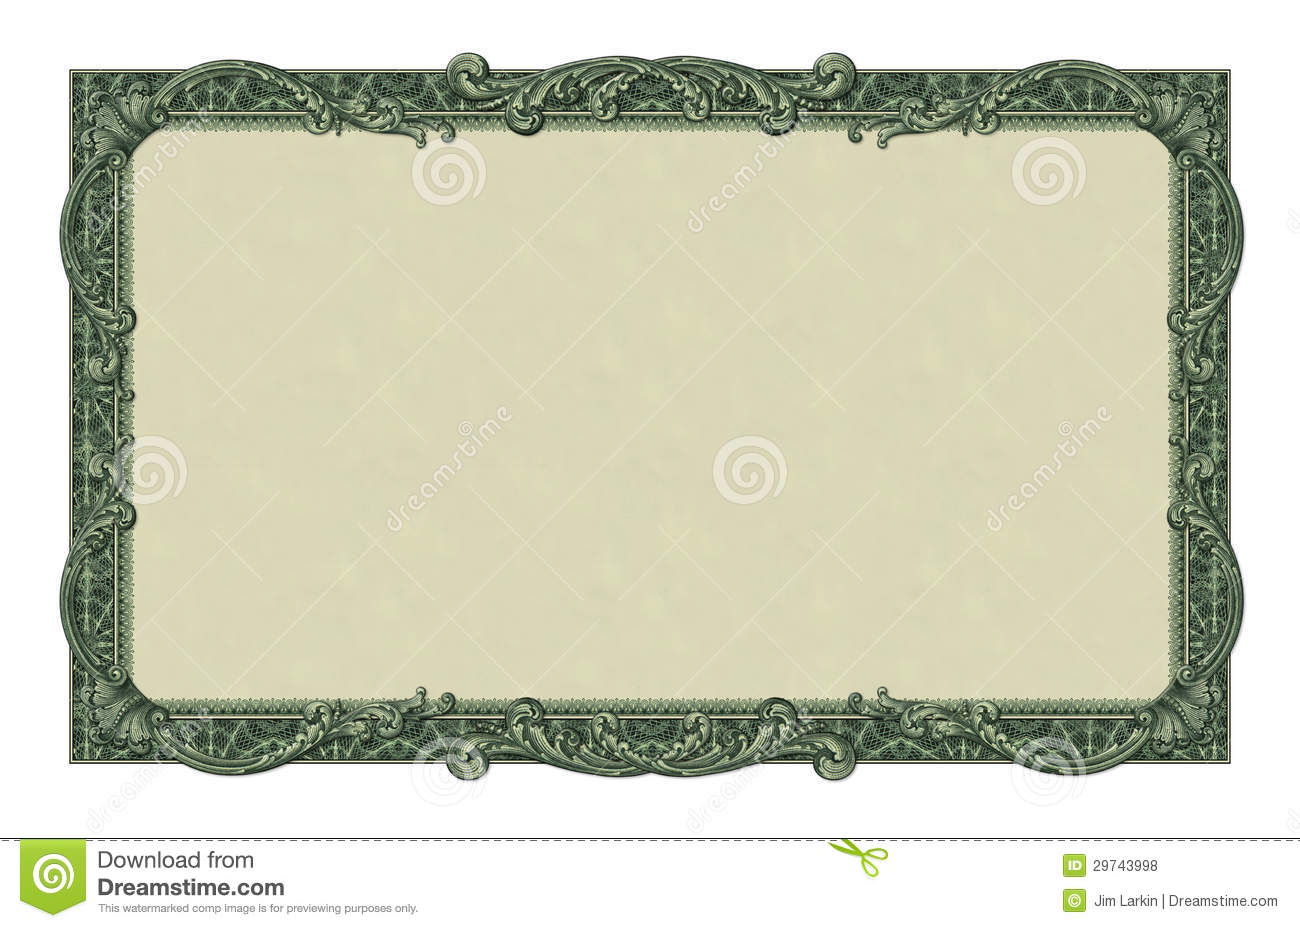 ... -illustration of a border/frame using elements from a dollar bill